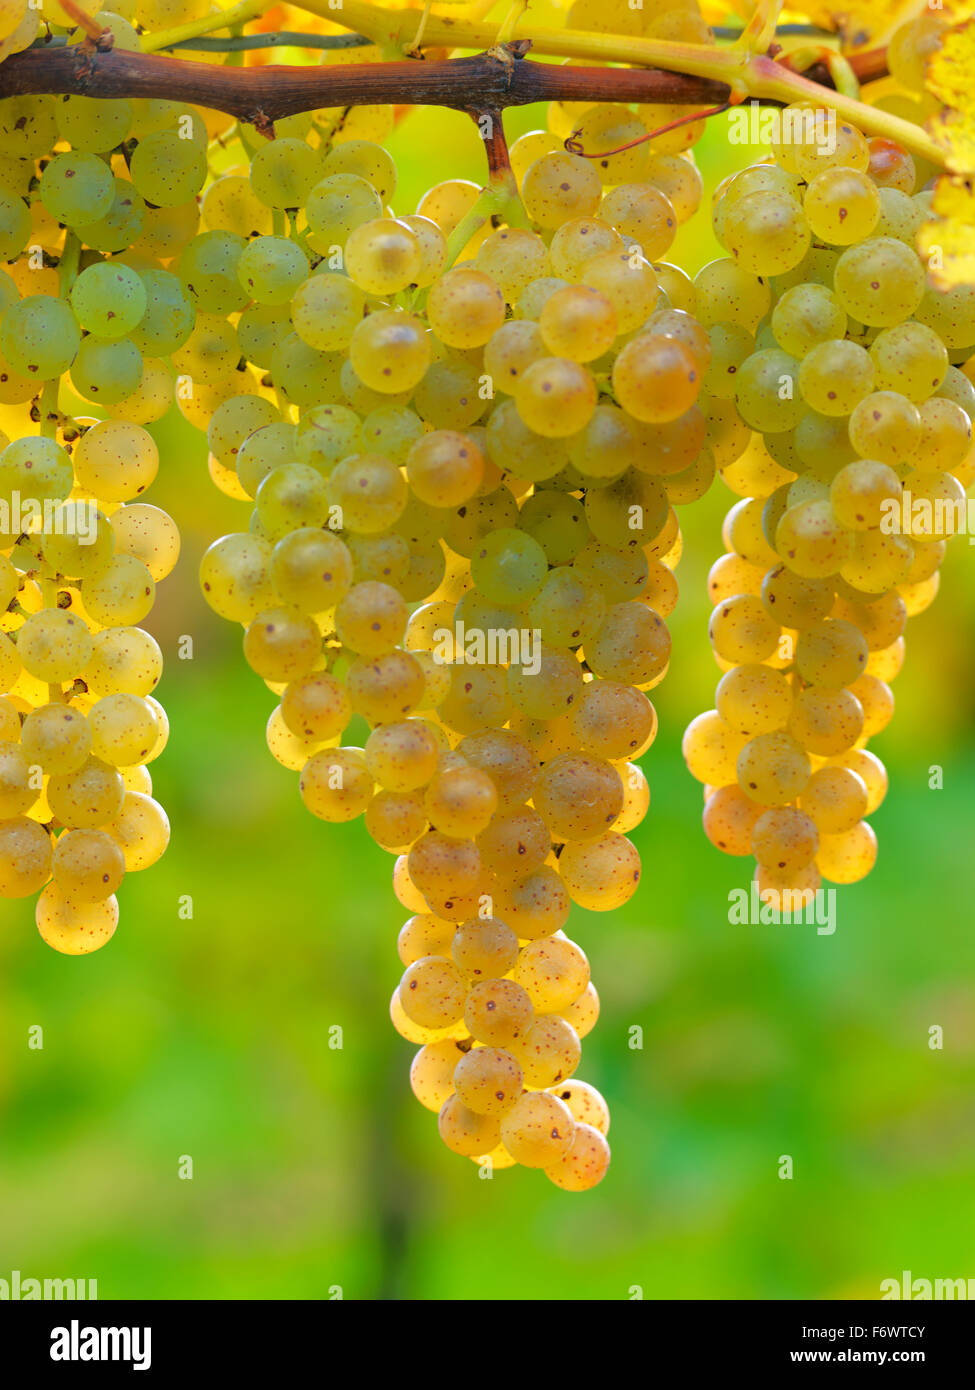 Canada,Ontario,Niagara-on-the-Lake, ripe white grapes on the vine light by sunlight. Vineyard grapes for white wine Stock Photo